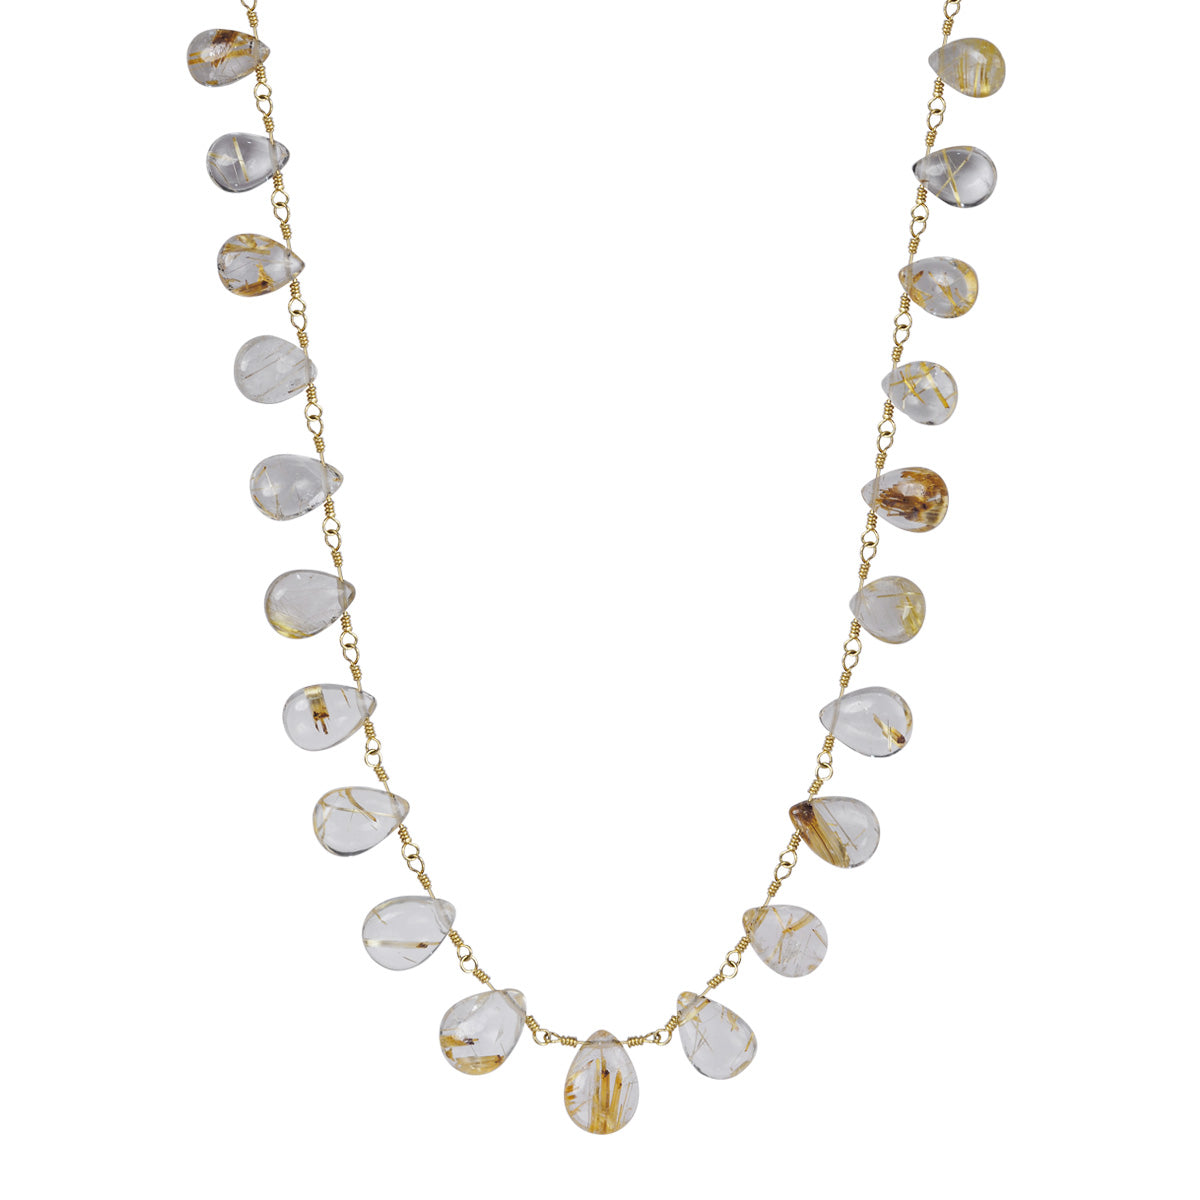 10K Gold Rutilated Quartz Teardrop Necklace